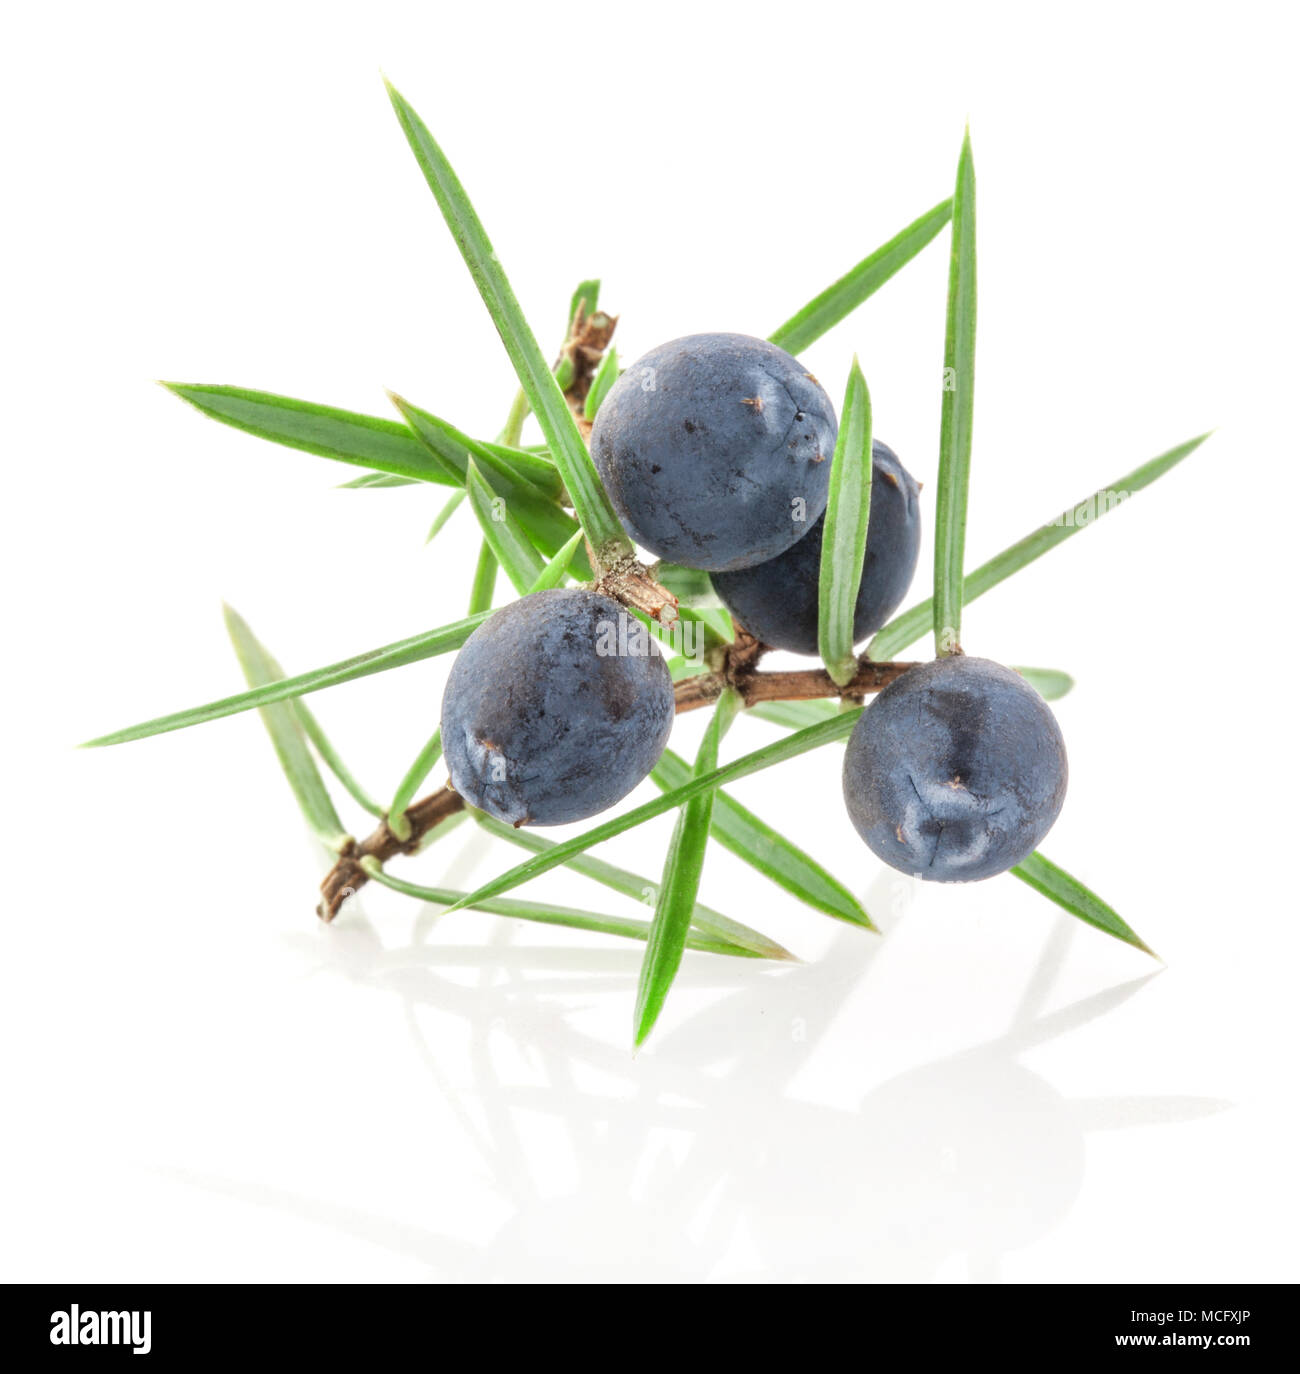 Juniper twig with berries isolated on white background - Stock Image